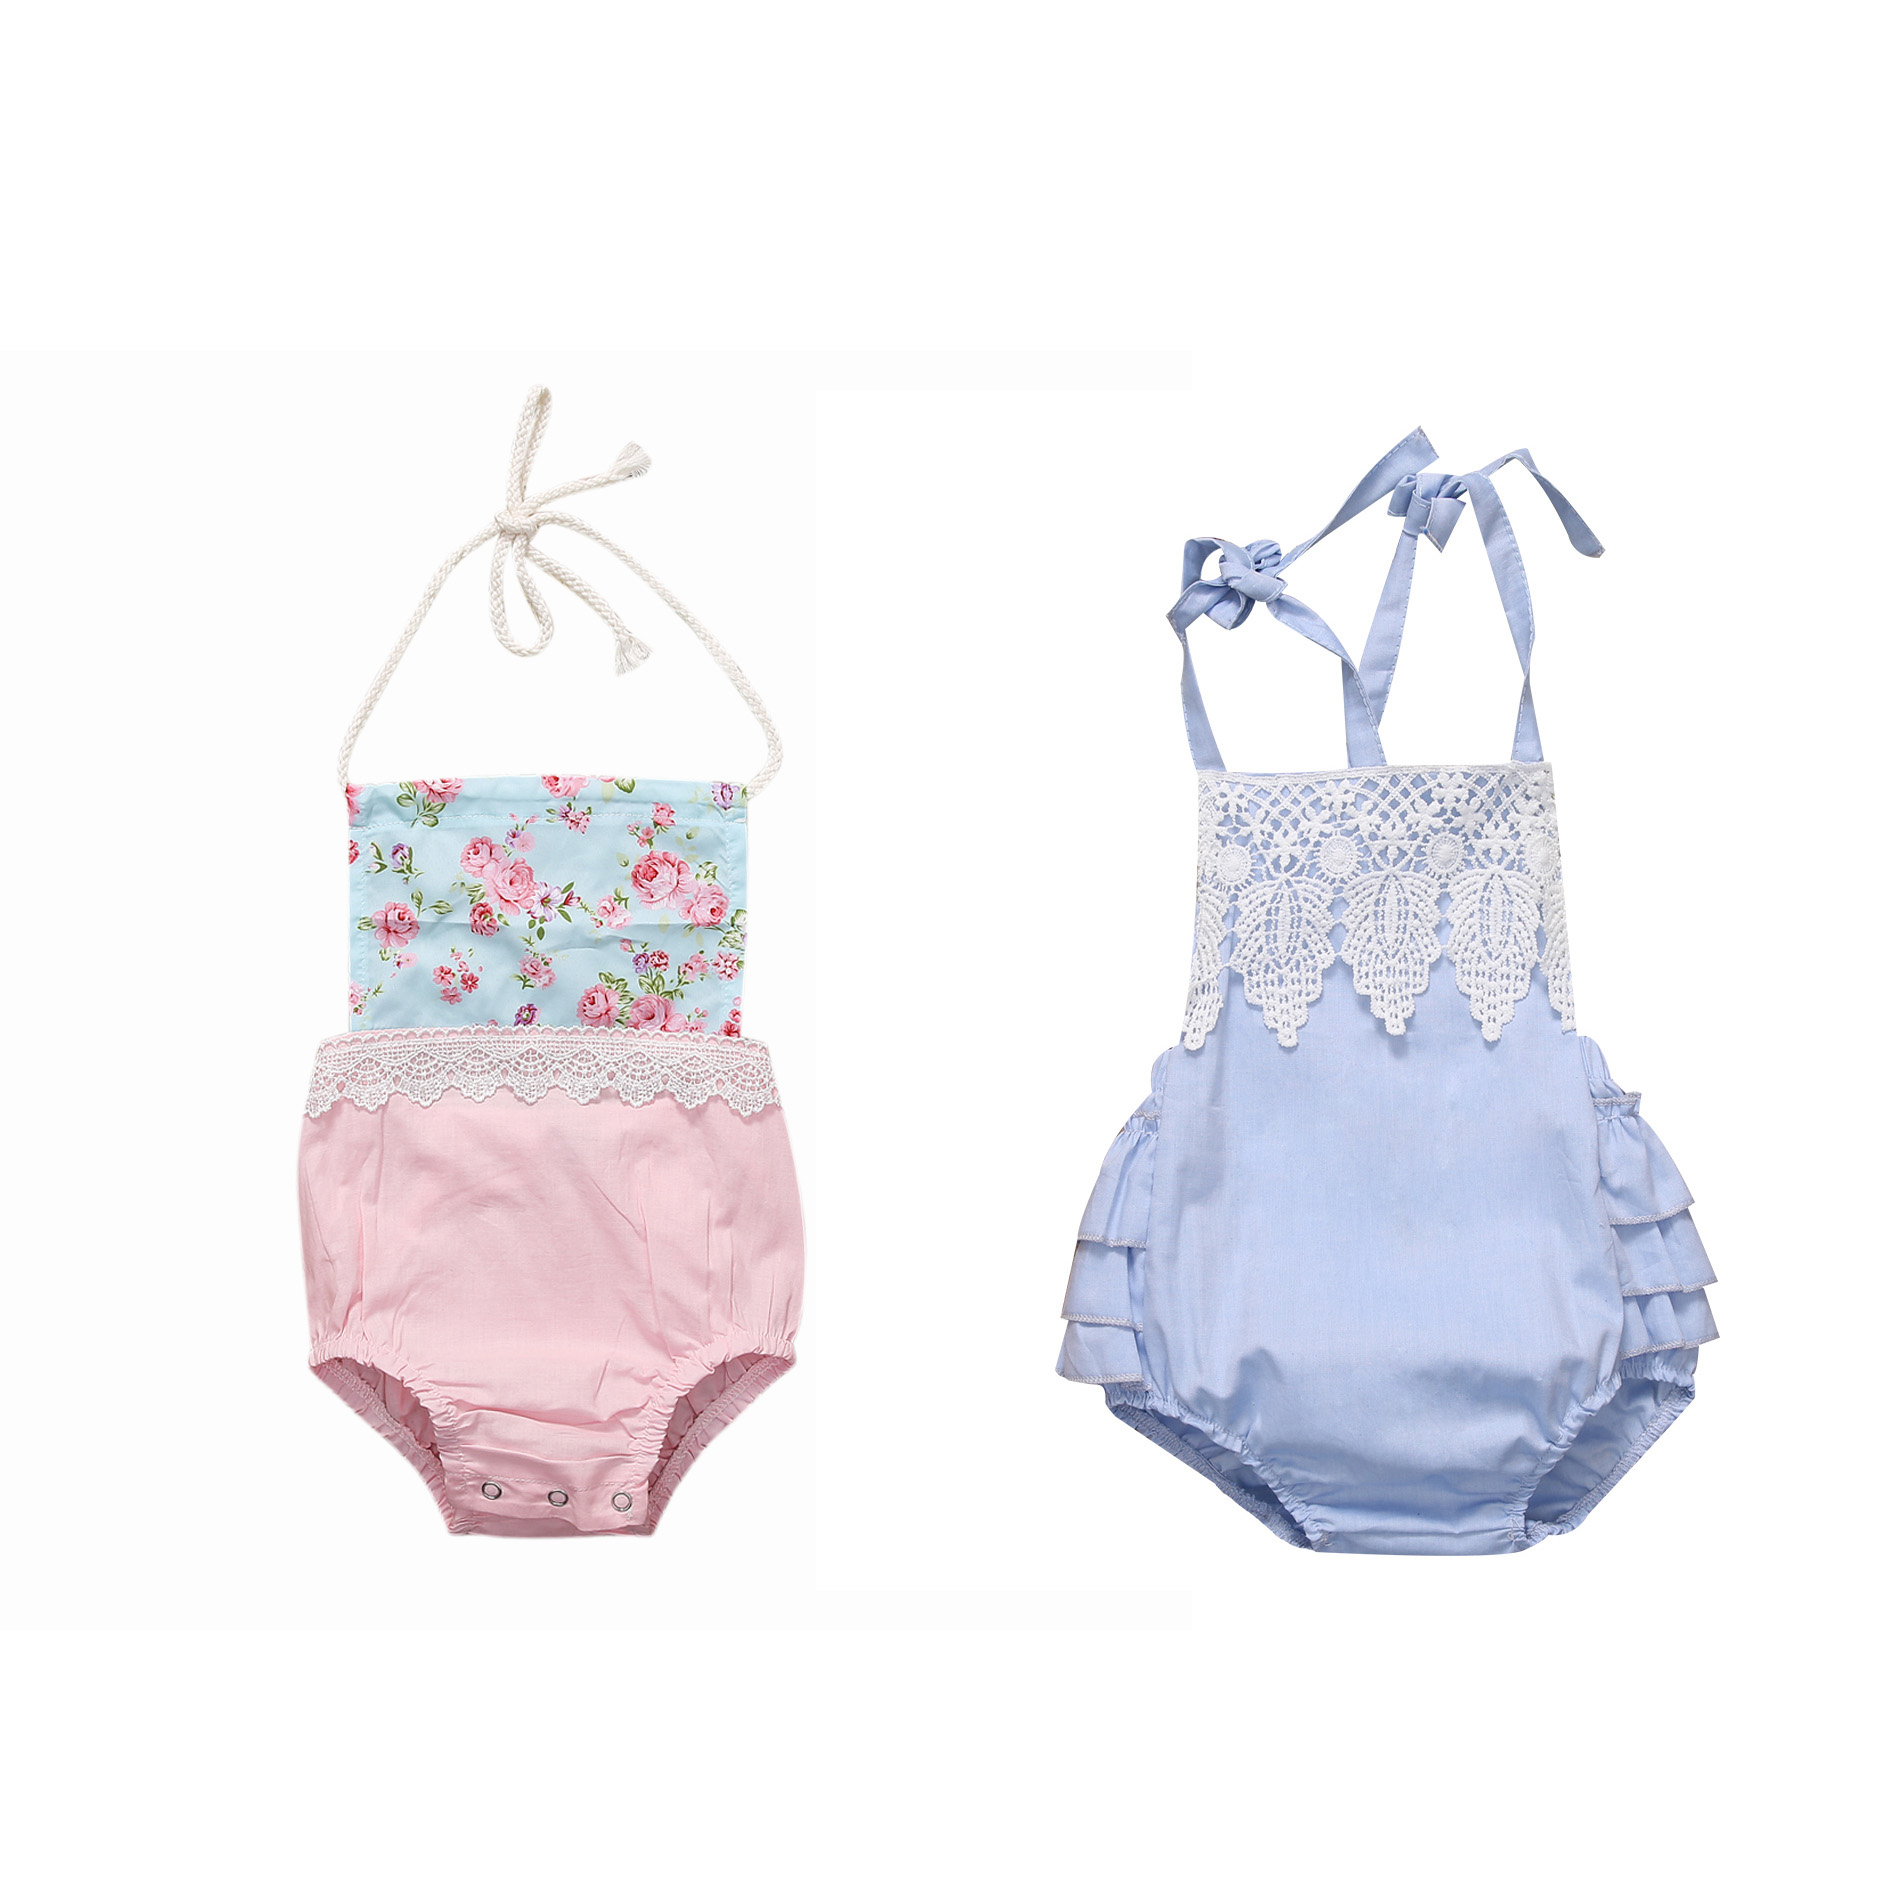 Newborn Infant Baby Girl Clothes Strap Lace Floral Romper Jumpsuit Outfit Summer Cotton Backless One-Pieces Outfit Baby Onesie newborn infant baby clothes girl floral strap lace romper jumpsuit playsuit outfit cute summer baby romper onesie